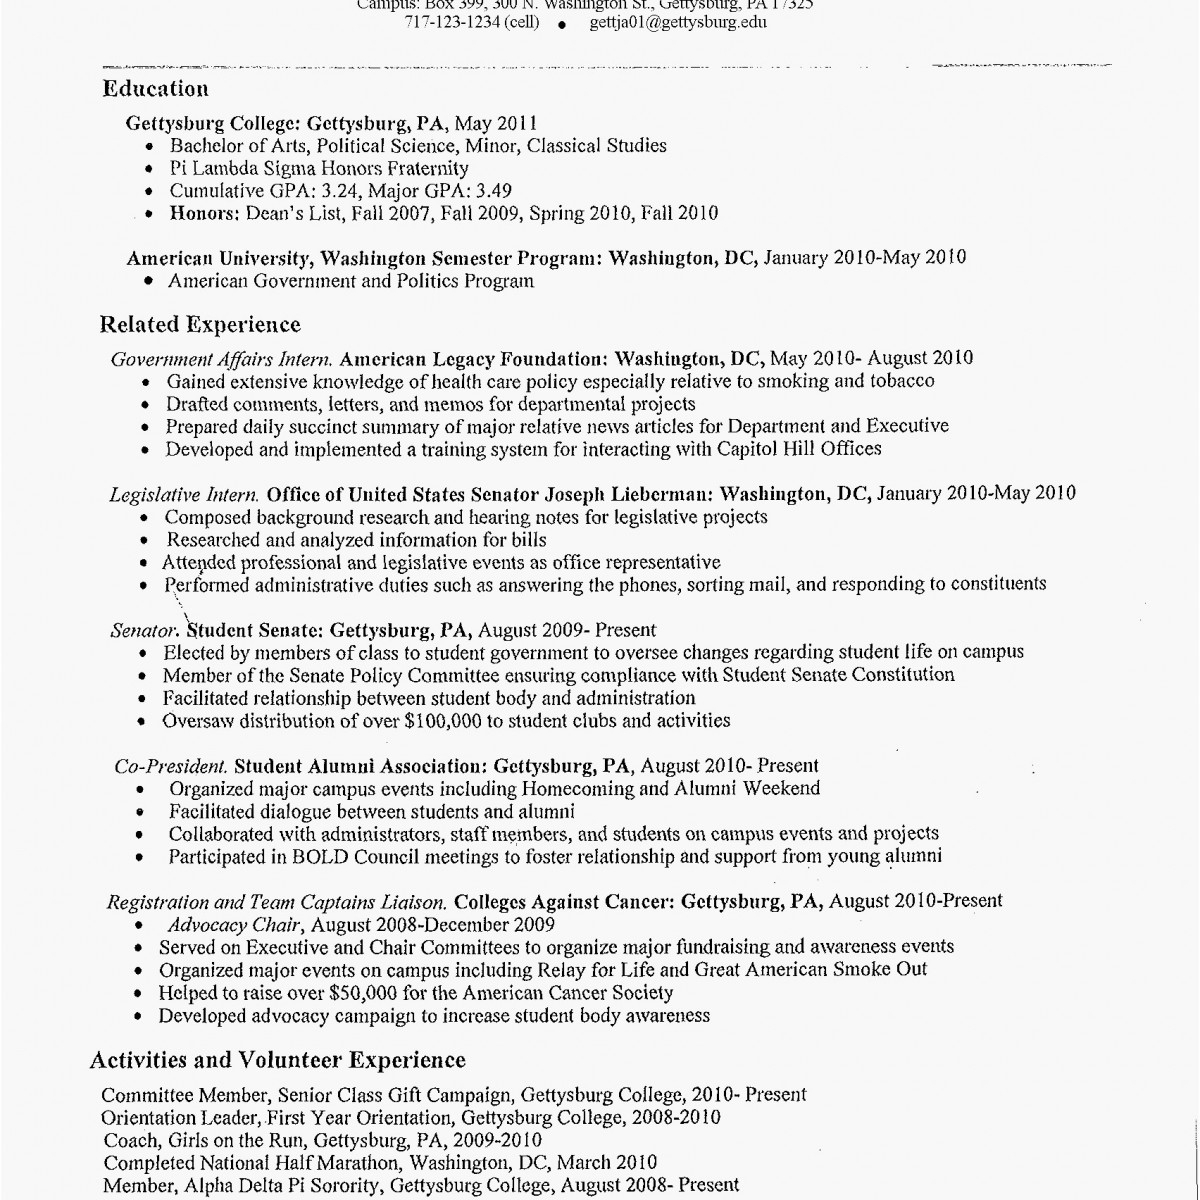 High School Students Resume - High School Students Resume Fresh Fresh Resume for Highschool